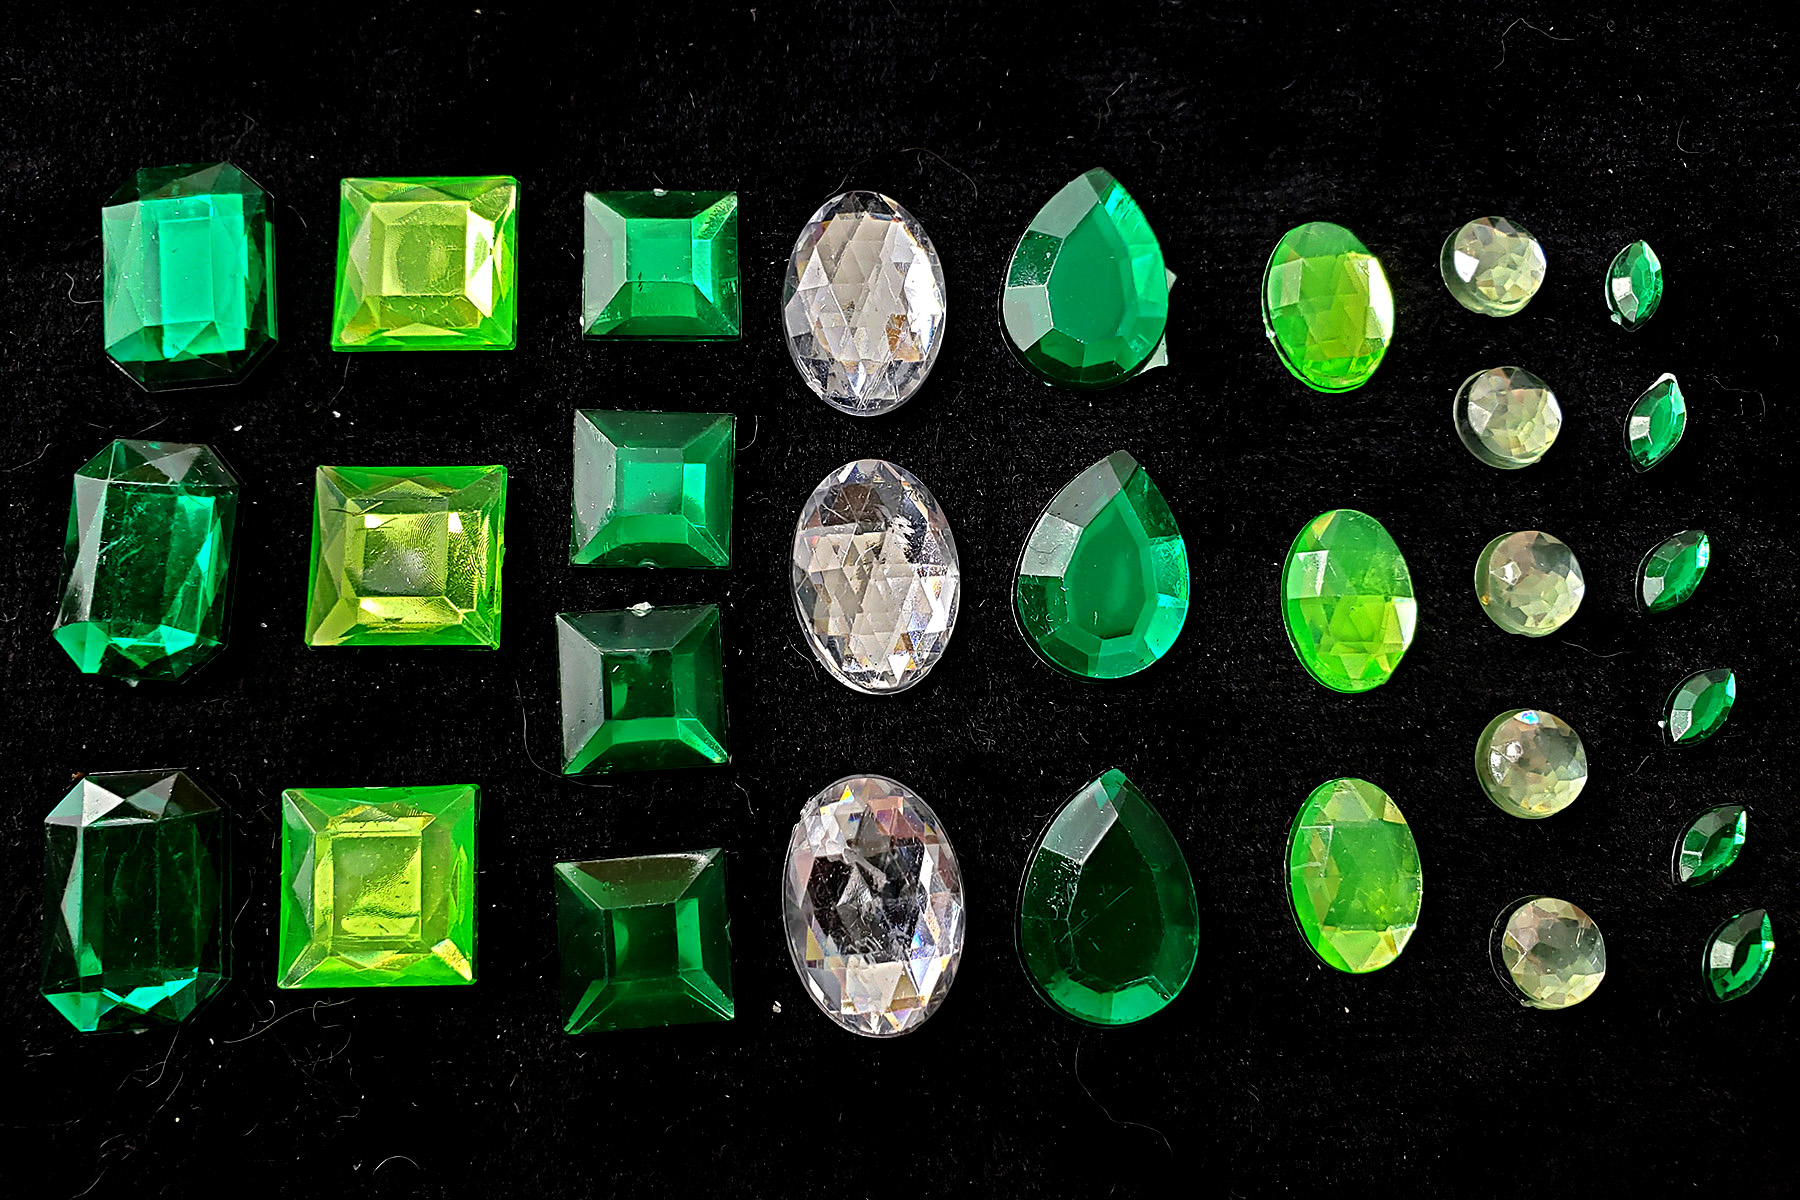 Green and clear rhinestones of various shapes, against a black background.